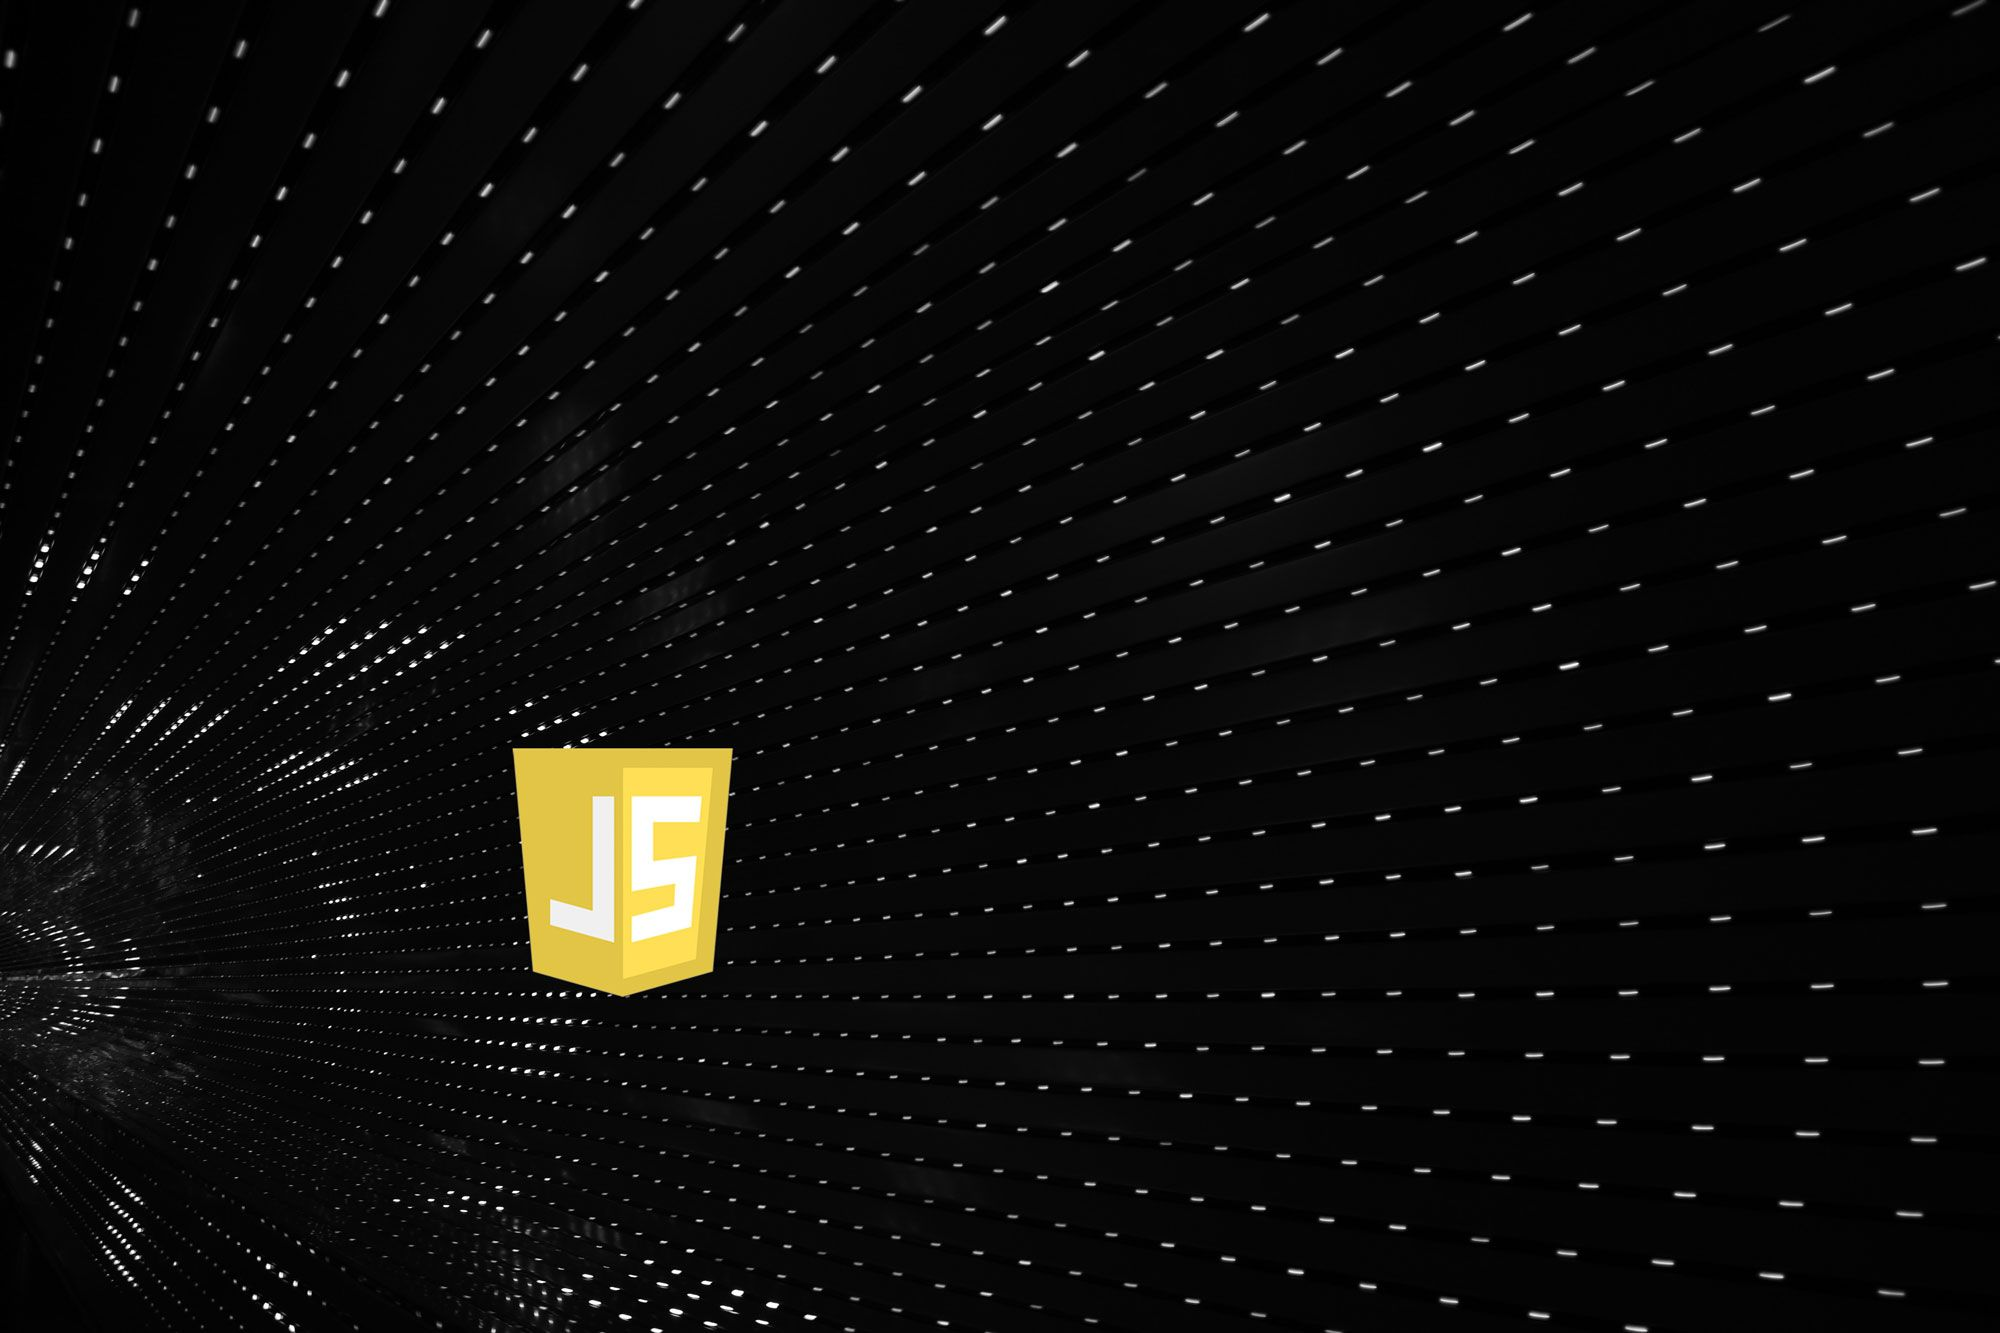 What's next for Javascript?